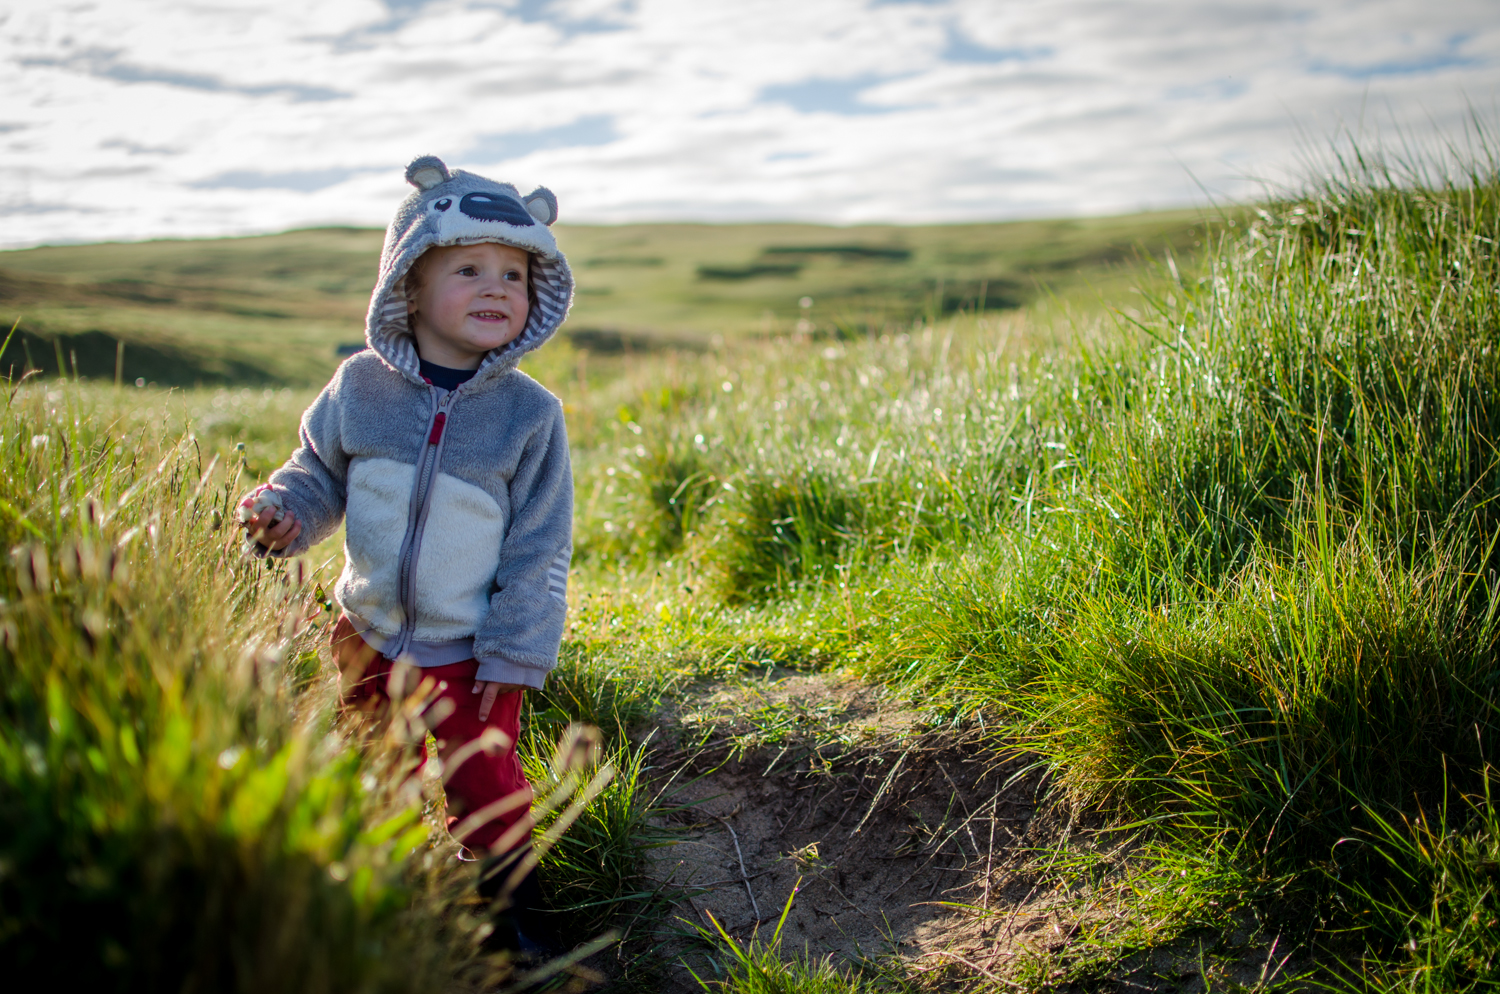 my boy in the grasses of the sand dunes makes for a great portrait opportunity.